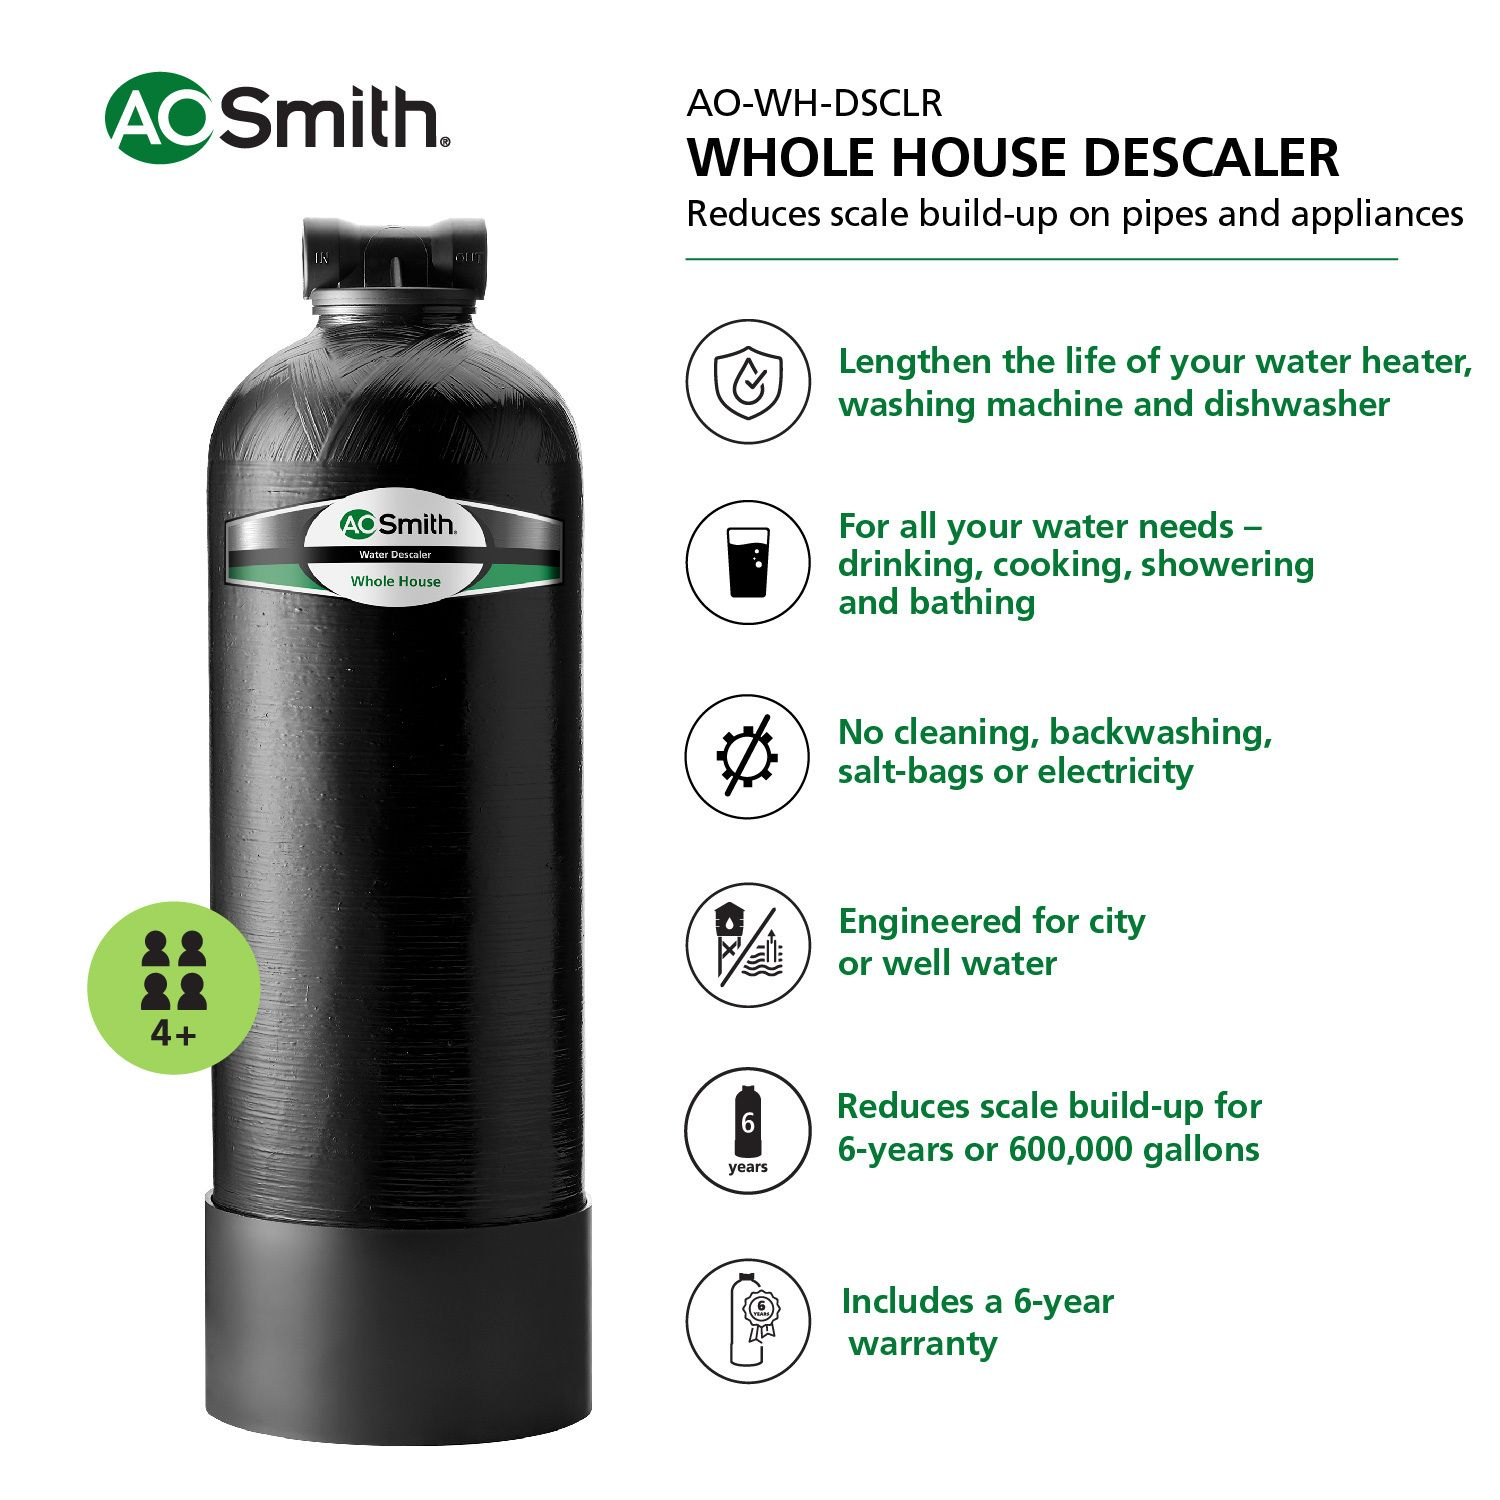 A O Smith Whole House Salt Free Water Descaler Lowes Com Water Filtration Water Filtration System Water